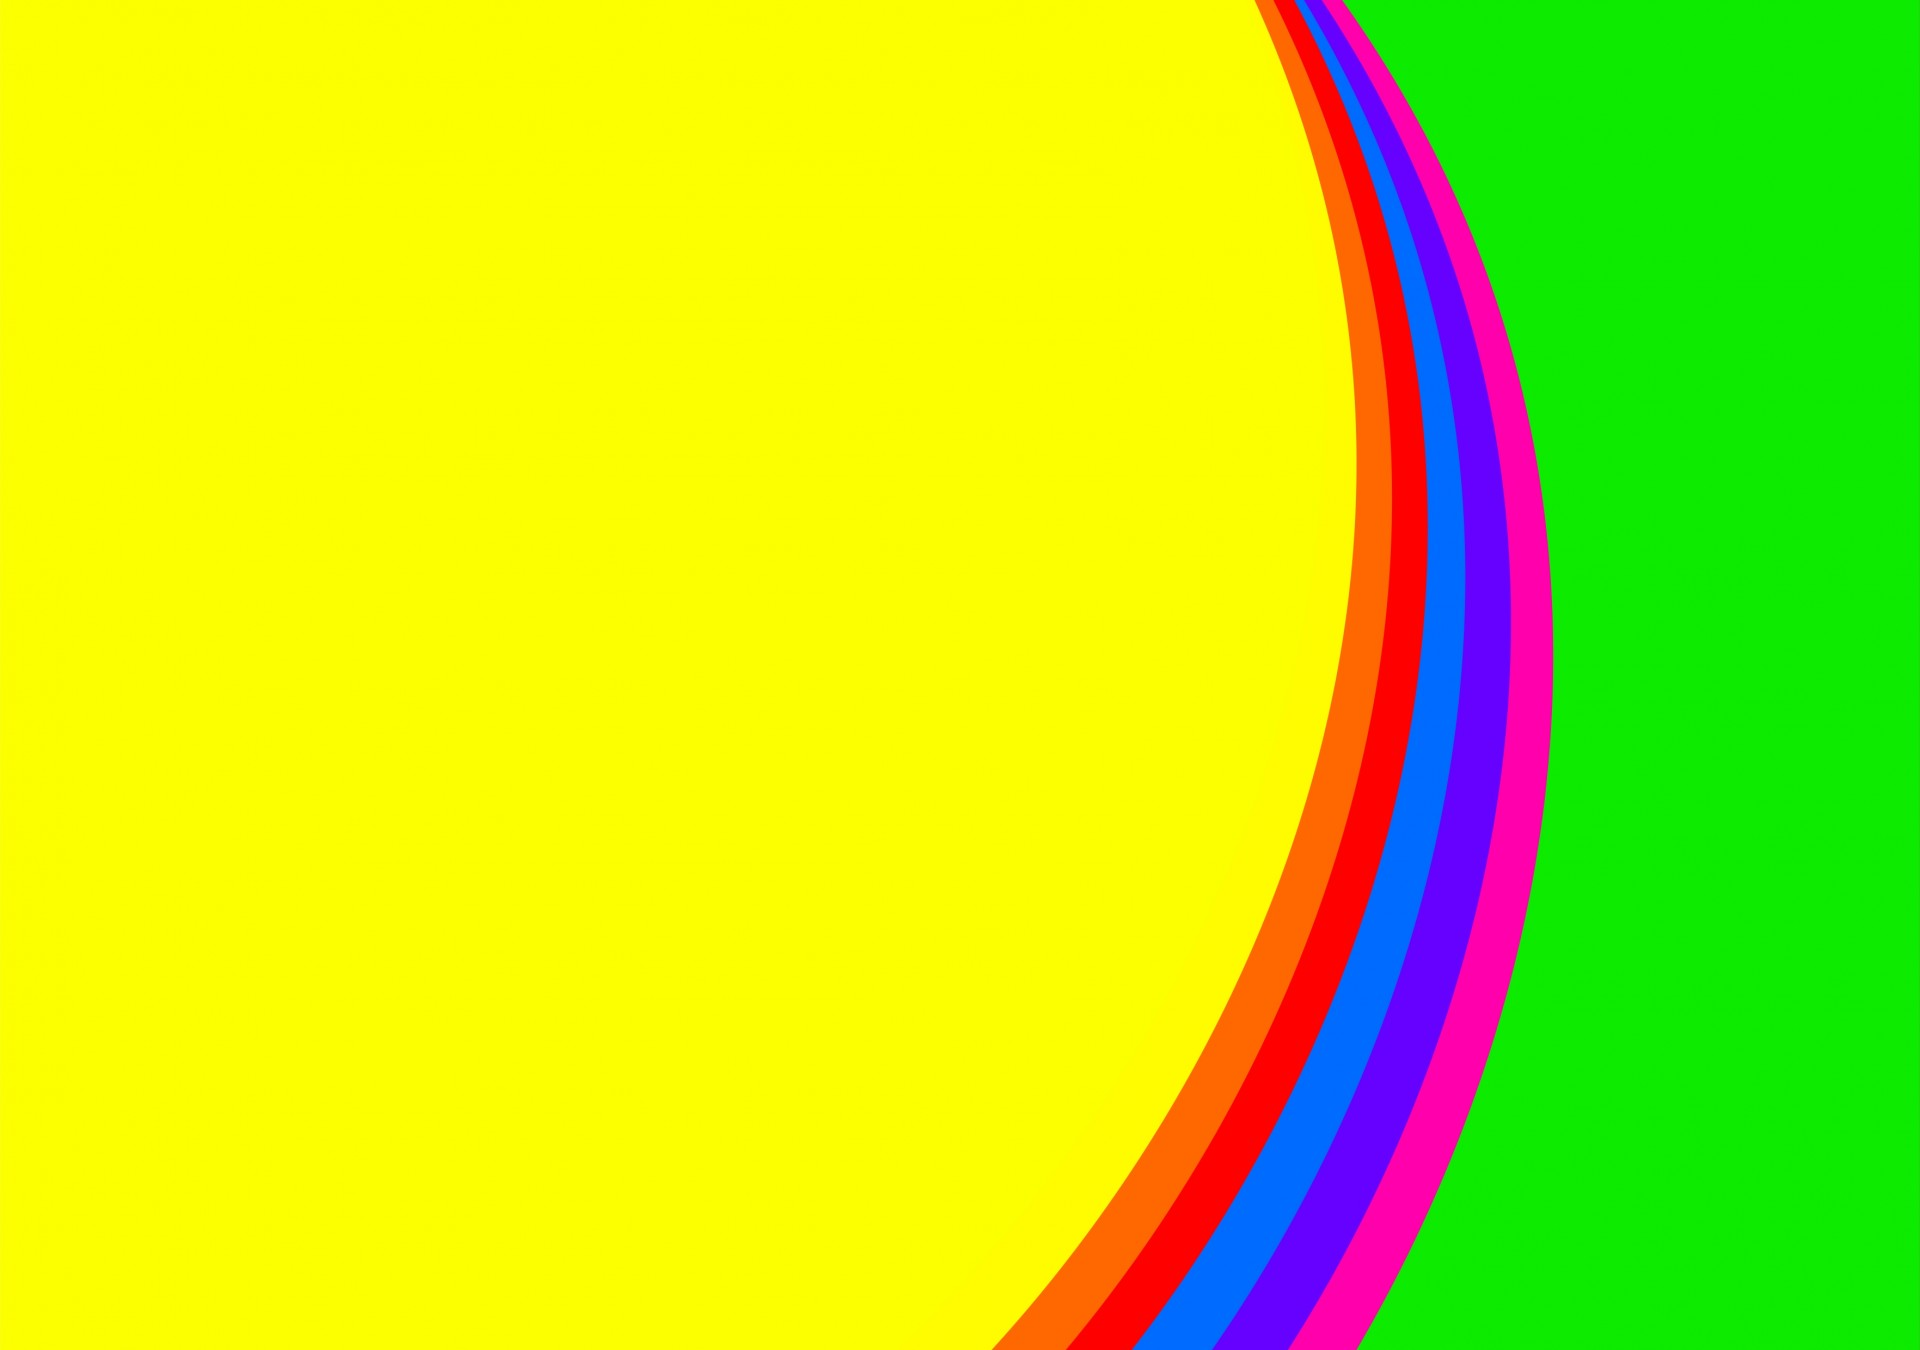 Rainbow Background Clipart Free Stock Photo Hd   Public Domain